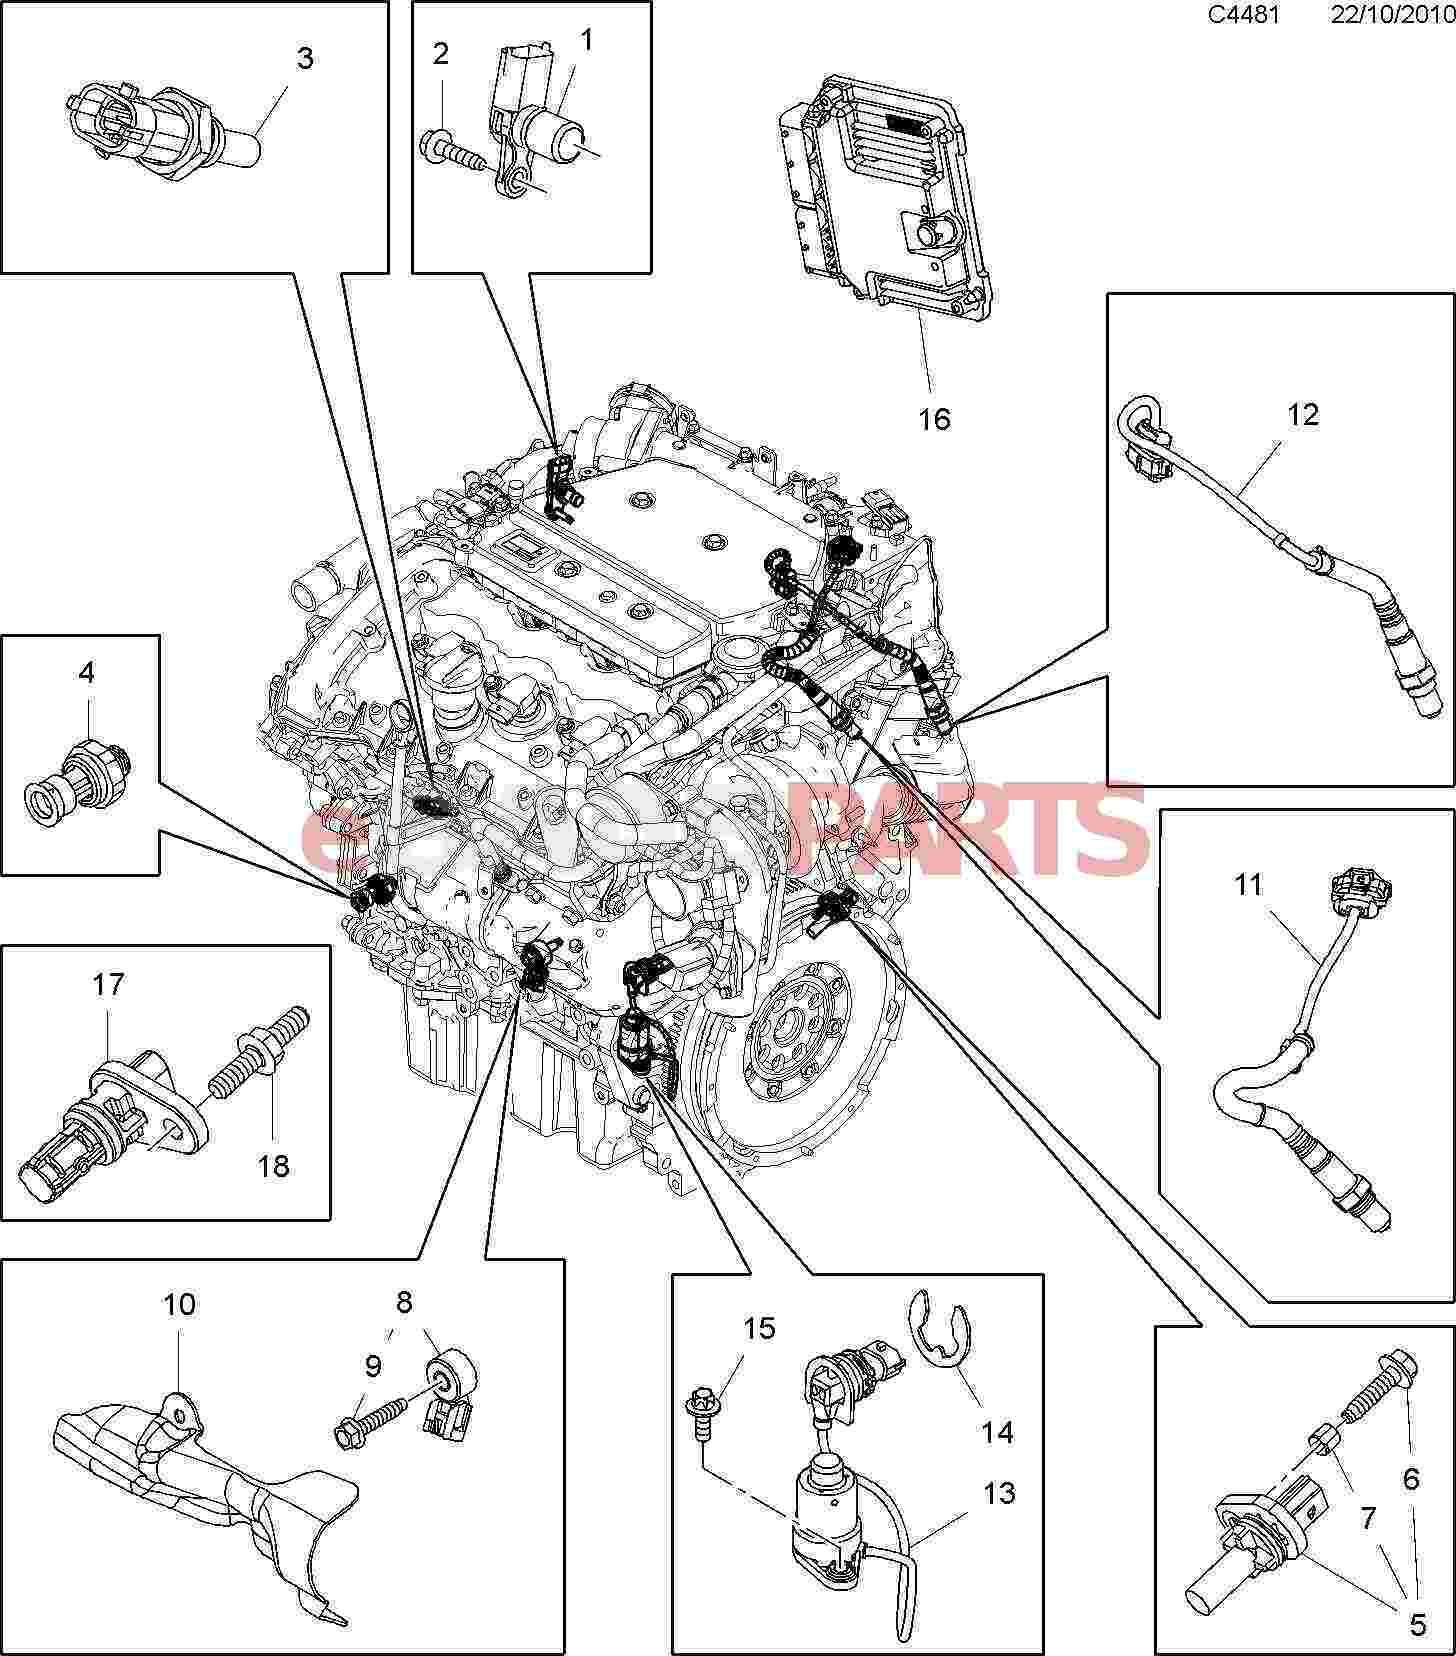 1993 saab 900 engine diagram real wiring diagram u2022 rh mcmxliv co 1987 Saab  900 Convertible 1995 Saab 900 SE Problems